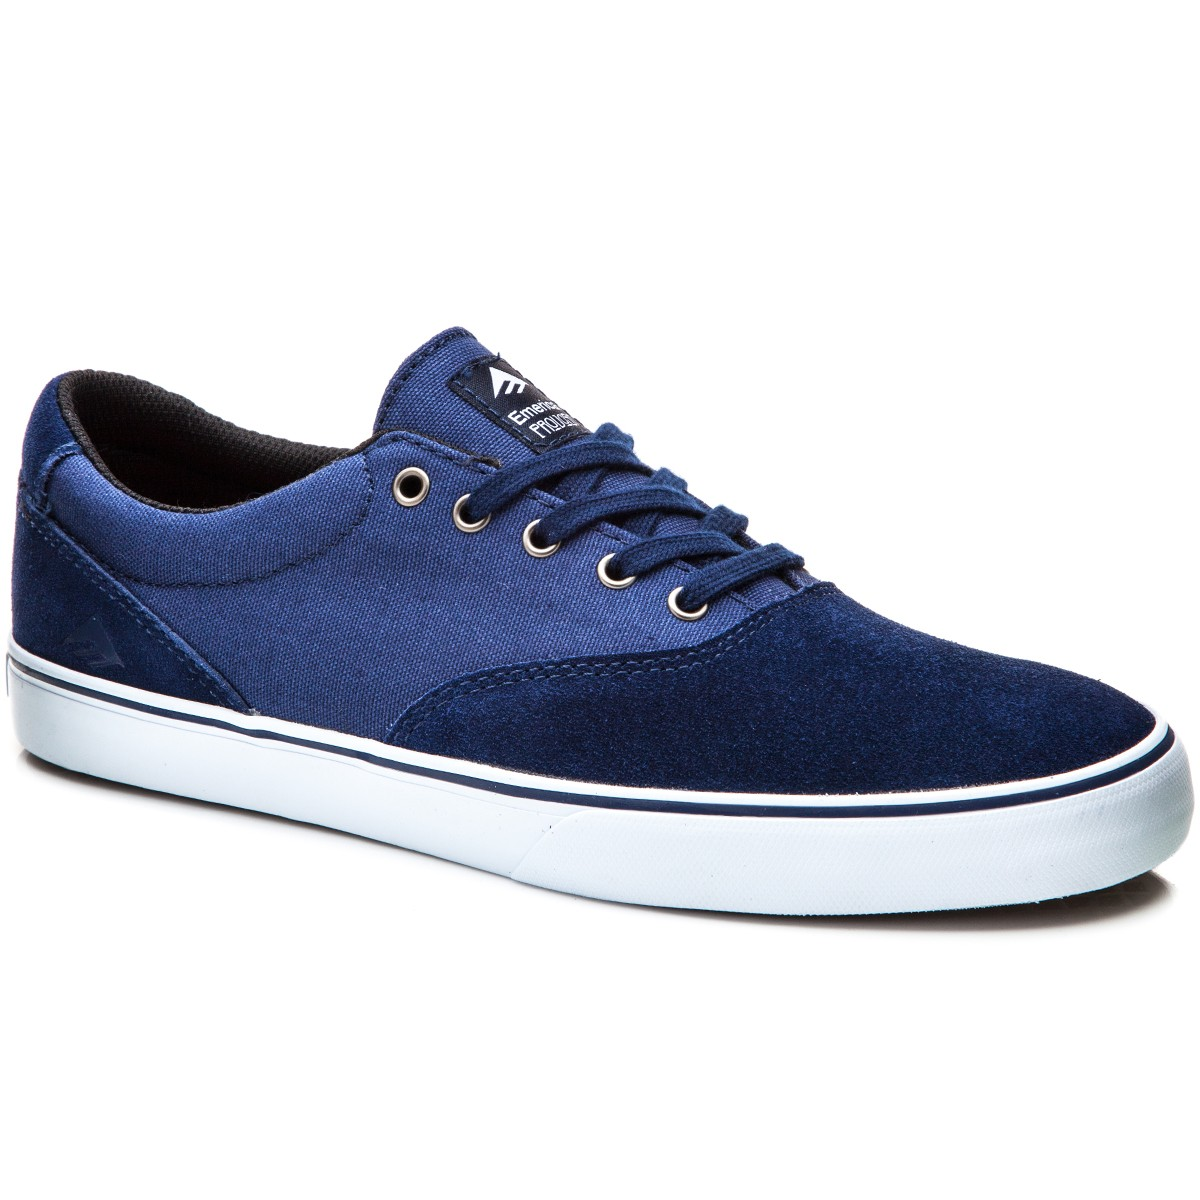 Emerica Provost Slim Vulc Shoes - Navy/White - 10.0